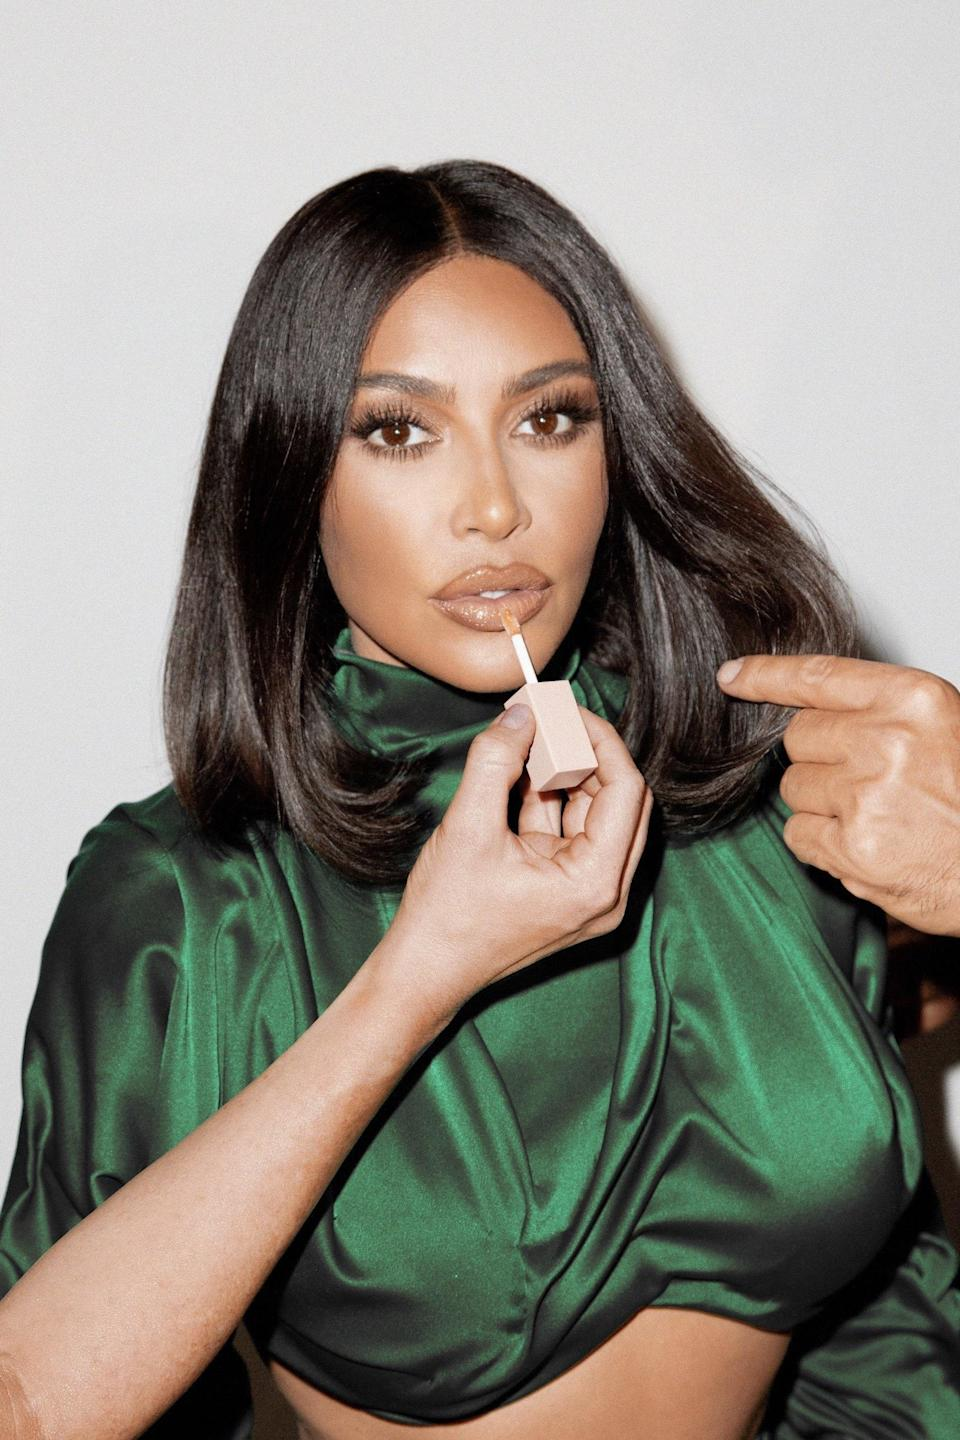 """<p>You didn't think we'd forget the first family of celebrity beauty brands, did you? The closest thing to an actual walking, talking human brand that we can think of, Kim Kardashian launched the KKW Beauty makeup line in 2017, followed shortly thereafter by KKW Fragrance. (Though, let us not forget, Kardashian launched a truly underrated eponymous fragrance in 2009.) In that time, even haters had to admit that the cosmetics and perfumes cranked out by KKW were really freakin' good, especially if you love <a href=""""https://www.allure.com/story/kim-kardashian-west-announces-kkw-beauty-lip-products-launch?mbid=synd_yahoo_rss"""" rel=""""nofollow noopener"""" target=""""_blank"""" data-ylk=""""slk:dramatic yet neutral"""" class=""""link rapid-noclick-resp"""">dramatic yet neutral</a> makeup looks and <a href=""""https://www.allure.com/story/kim-kardashian-kris-jenner-fragrance-kkw-beauty?mbid=synd_yahoo_rss"""" rel=""""nofollow noopener"""" target=""""_blank"""" data-ylk=""""slk:sultry floral fragrances"""" class=""""link rapid-noclick-resp"""">sultry floral fragrances</a>.</p> <p><strong>Star product:</strong> Because of the frequent introduction of new collections, some fan-favorite products can fly out the door and never come back. But we're hopeful that the <a href=""""https://shop-links.co/1747583470988062361"""" rel=""""nofollow noopener"""" target=""""_blank"""" data-ylk=""""slk:Nude Glosses"""" class=""""link rapid-noclick-resp"""">Nude Glosses</a> ($20 each) have found a permanent spot in KKW Beauty's lineup. """"Depending on the look you're going for, you can layer, mix and match the shades to go from <a href=""""https://www.allure.com/story/kkw-beauty-classic-2-eyeshadow-palette-nude-lip-gloss-kim-kardashian?mbid=synd_yahoo_rss"""" rel=""""nofollow noopener"""" target=""""_blank"""" data-ylk=""""slk:creamy to glossy"""" class=""""link rapid-noclick-resp"""">creamy to glossy</a> in a minute,"""" has said about the product. """"You can also wear them alone for a wash of shiny nude color.""""</p>"""